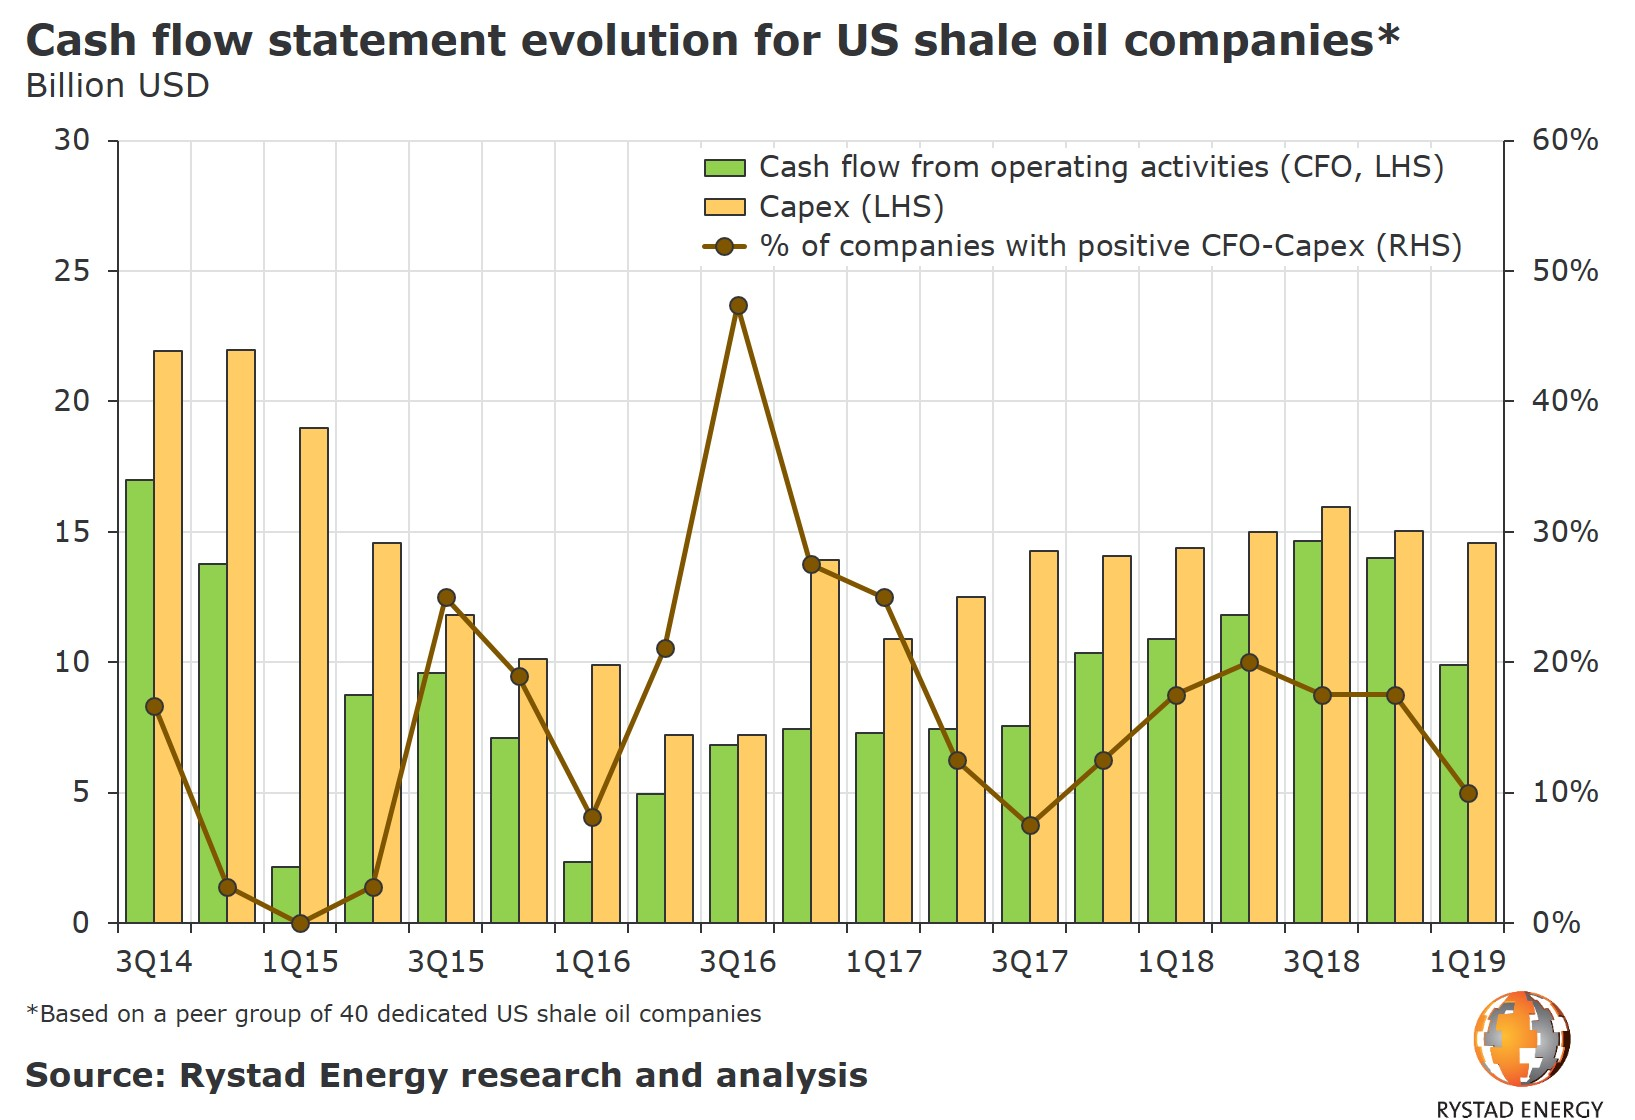 A bar chart showing the cash flow statement evolution for US shale oil companies in Billion USD from 3Q15 to 1Q19. Source: Rystad Energy research and analysis